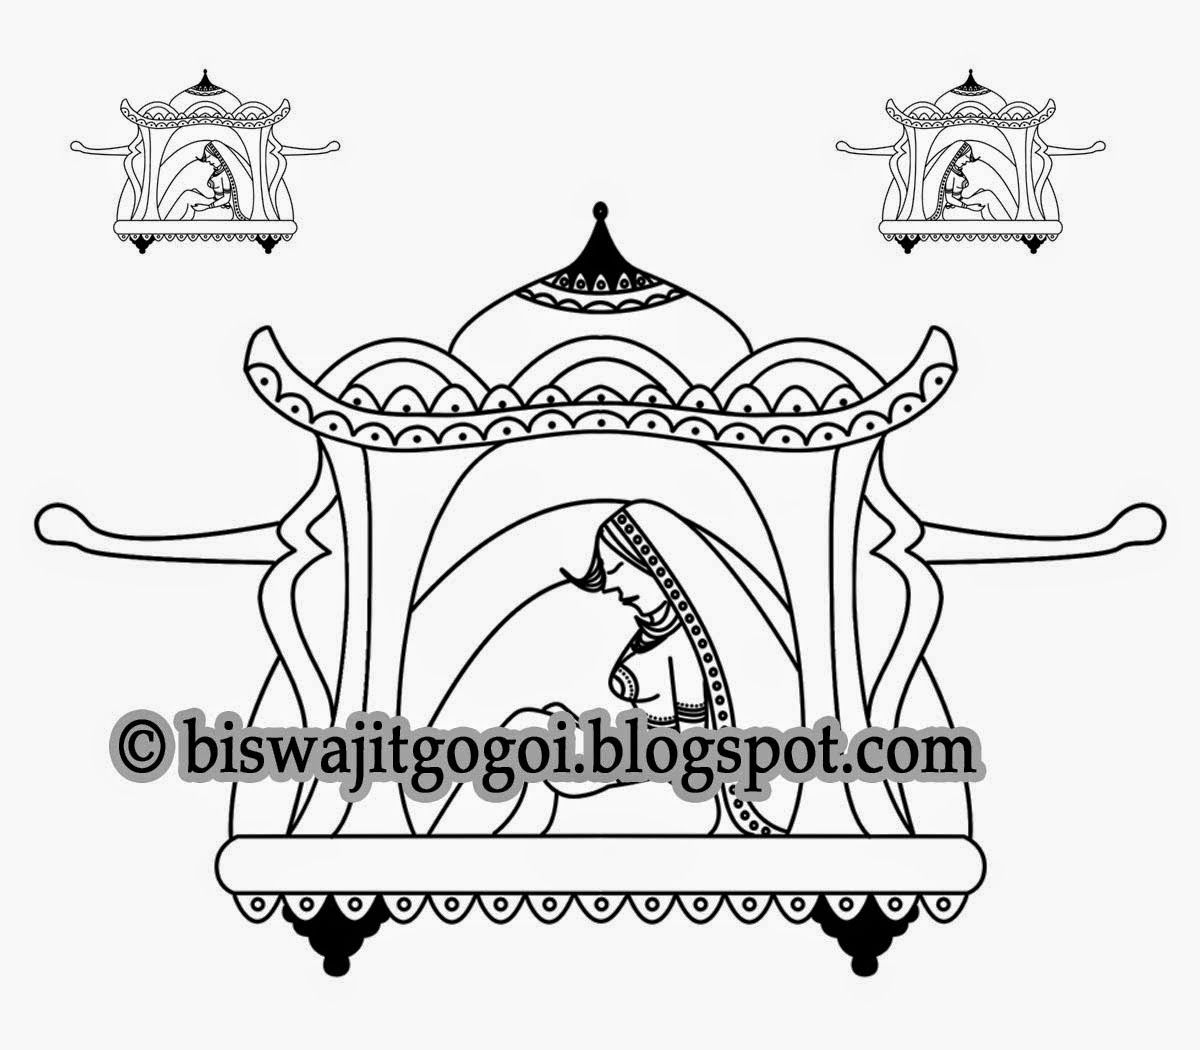 kankotri clipart 10 free cliparts  download images on